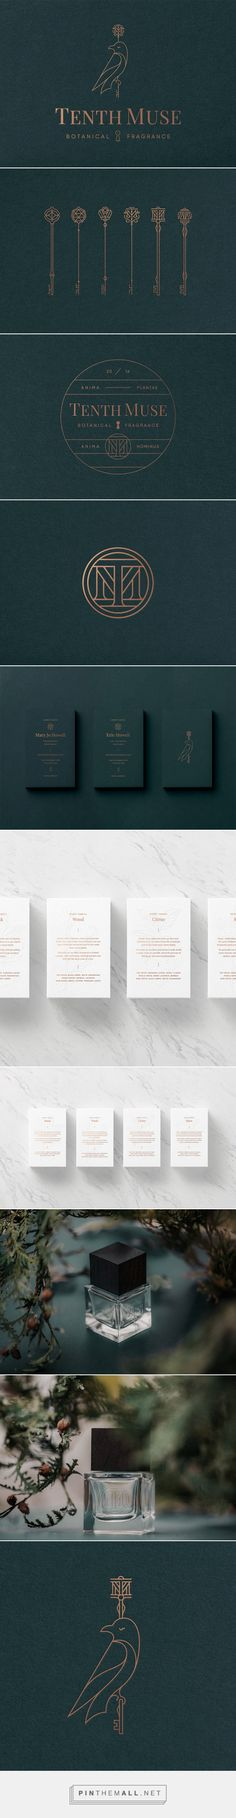 Tenth Muse Brand Identity by Studio MPLS | Inspiration Grid | Design Inspiration... - a grouped images picture - Pin Them All